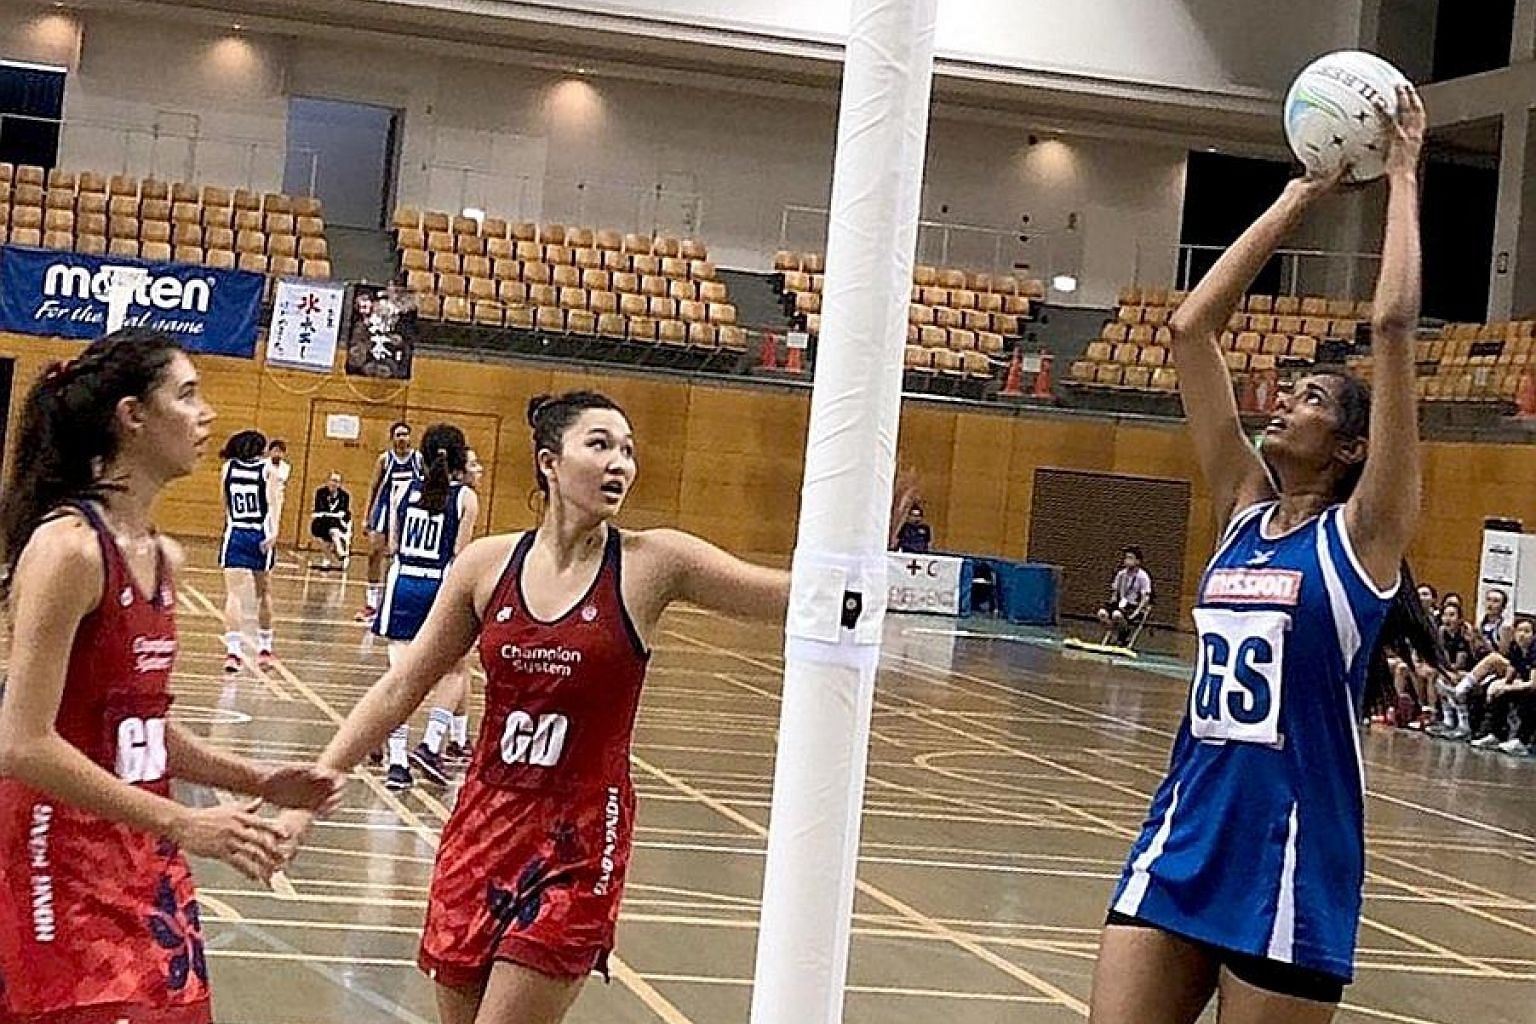 Singapore Under-21 goal shooter Pooja Senthil Kumar (right) in action during yesterday's Asian Youth Netball Championship semi-final against Hong Kong. Pooja had a 90 per cent shooting accuracy in her team's 62-36 victory.